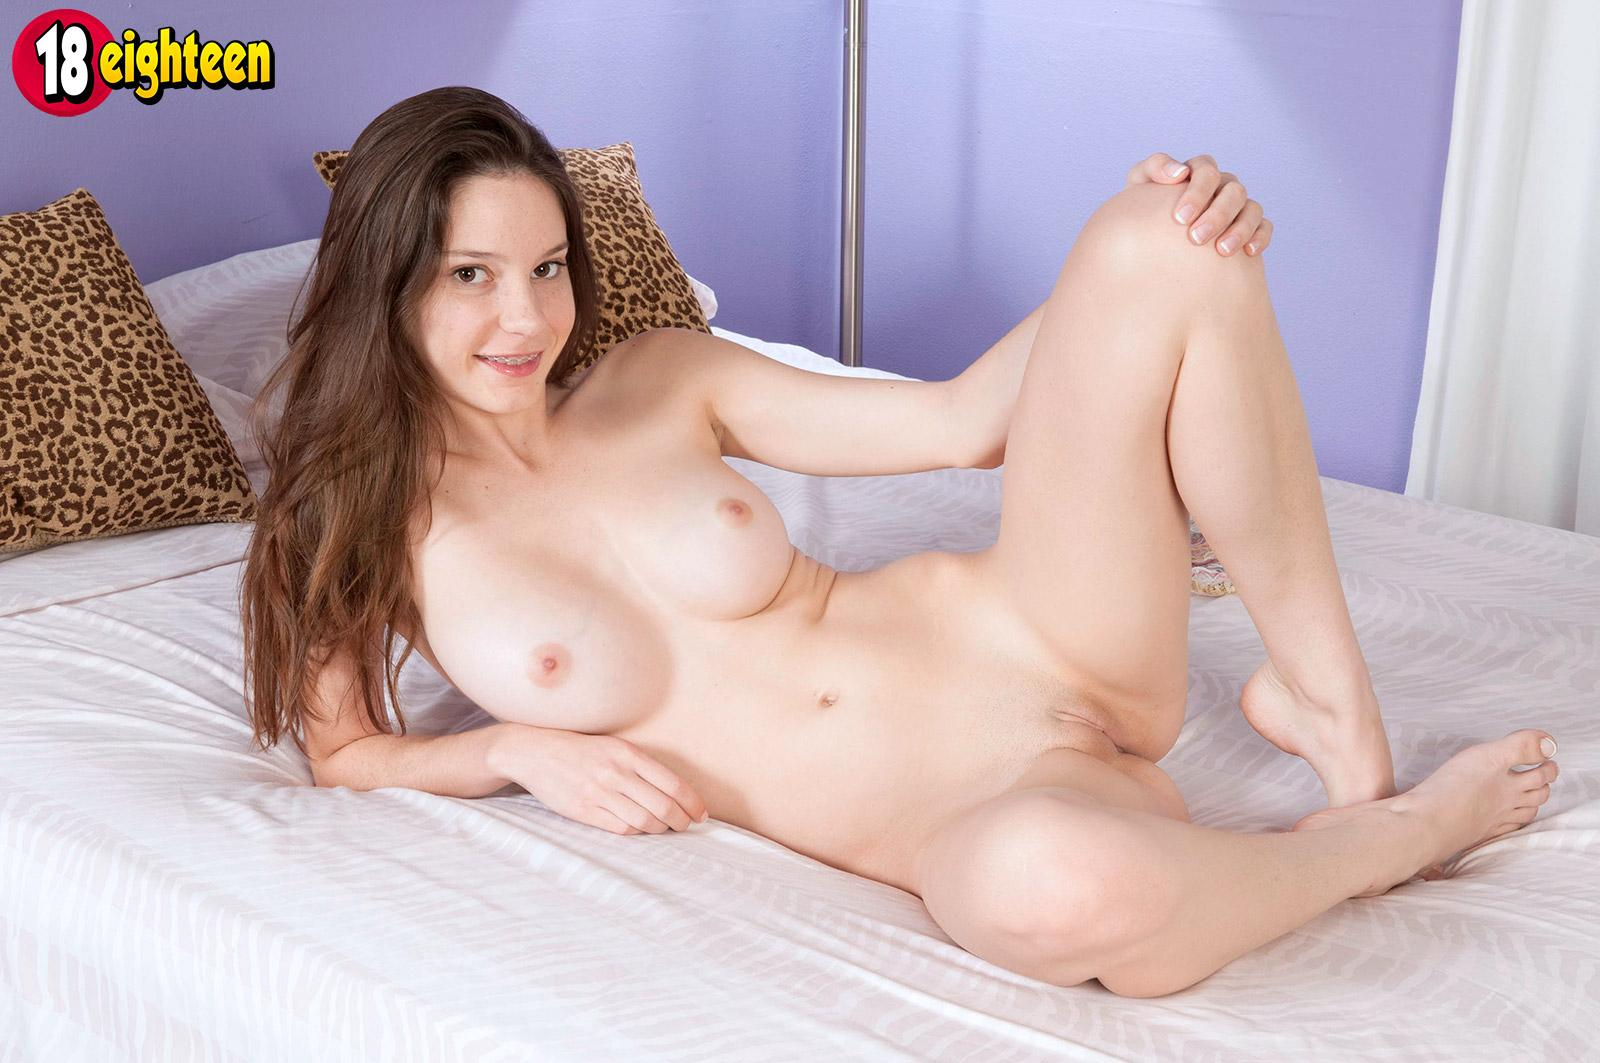 Rilee Marks Shows Tight Teen Pussy In Bed Coed Cherry Free Hot Nude Porn Pic Gallery